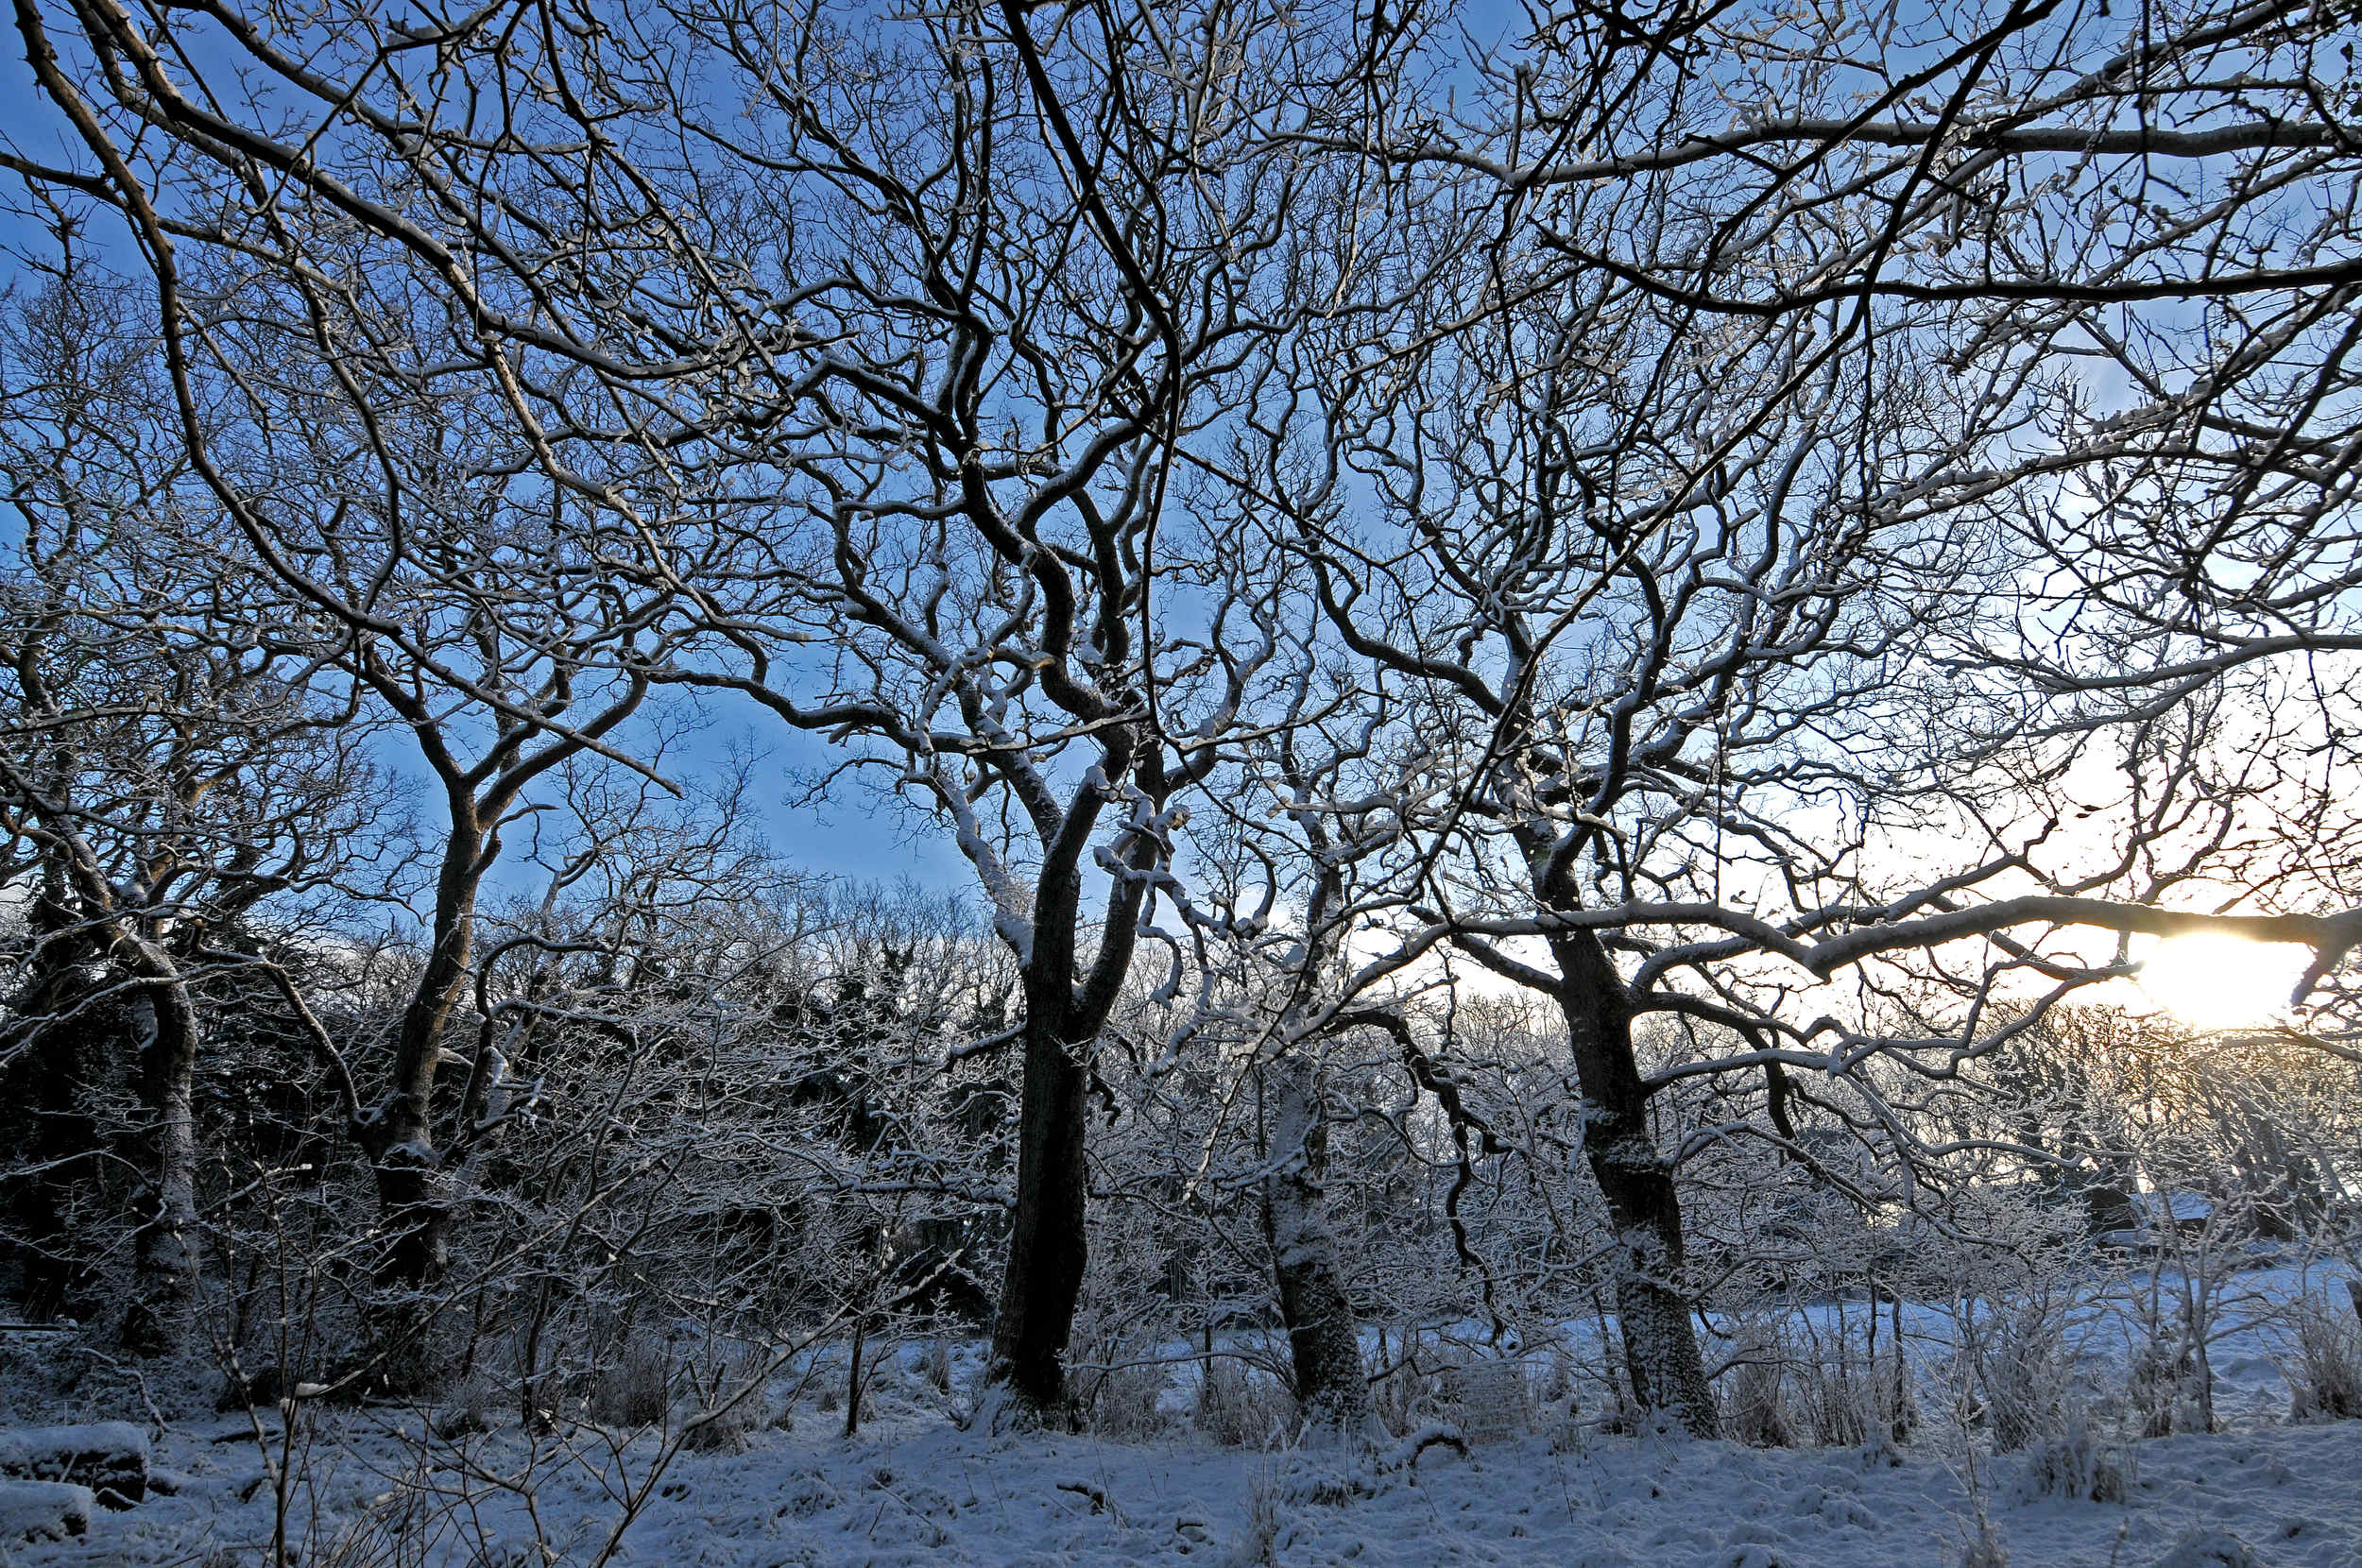 Snow-covered trees near Kirk Michael